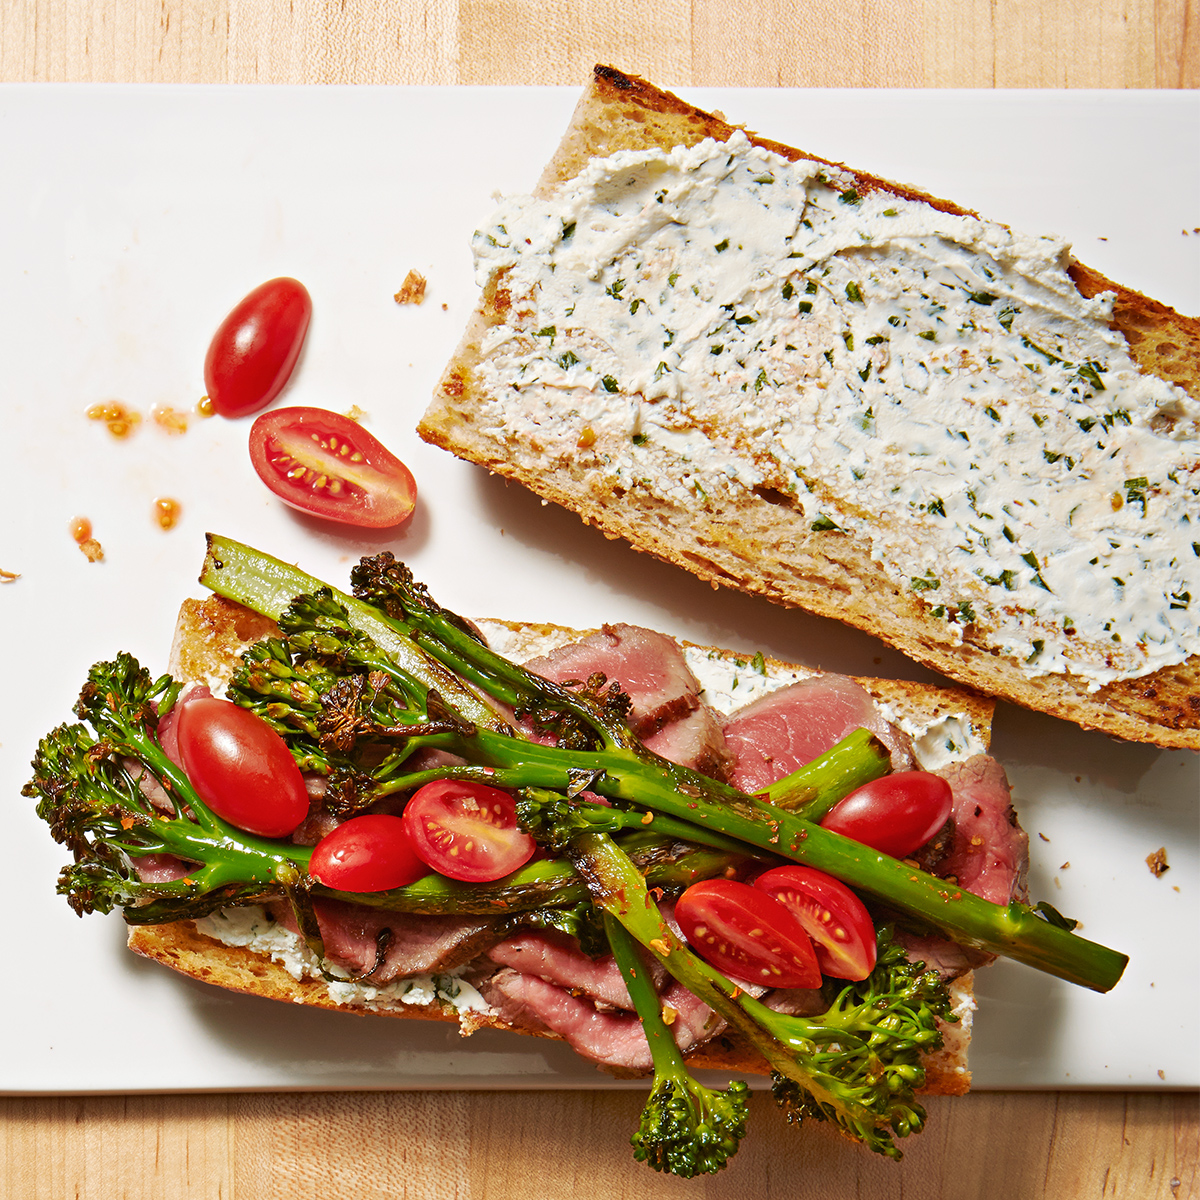 steak broccolini and goat cheese sandwiches